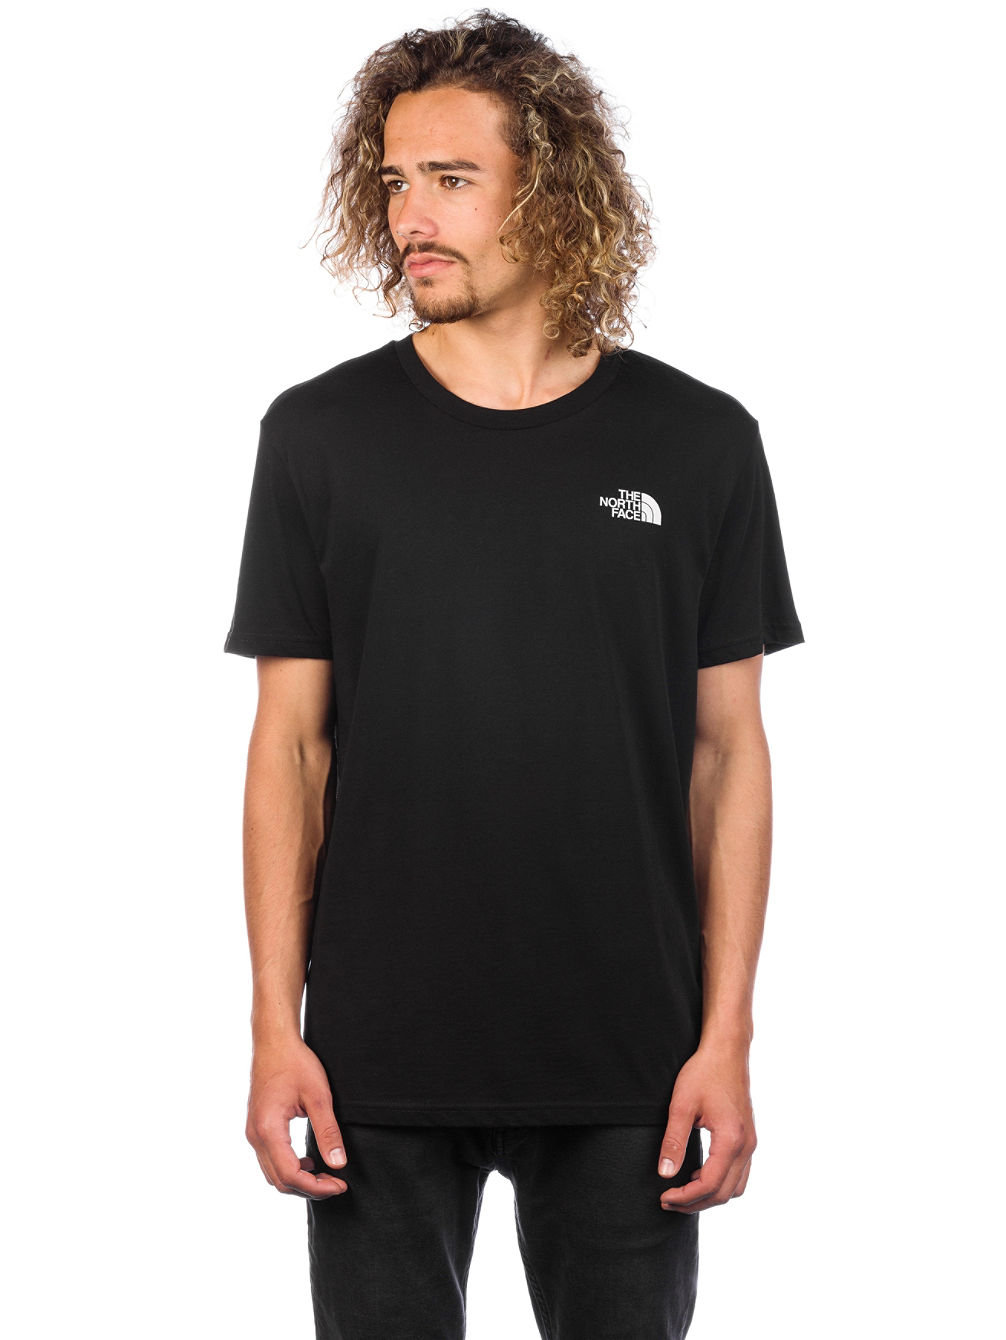 c40b5ff5 Buy THE NORTH FACE Simple Dome T-Shirt online at Blue Tomato